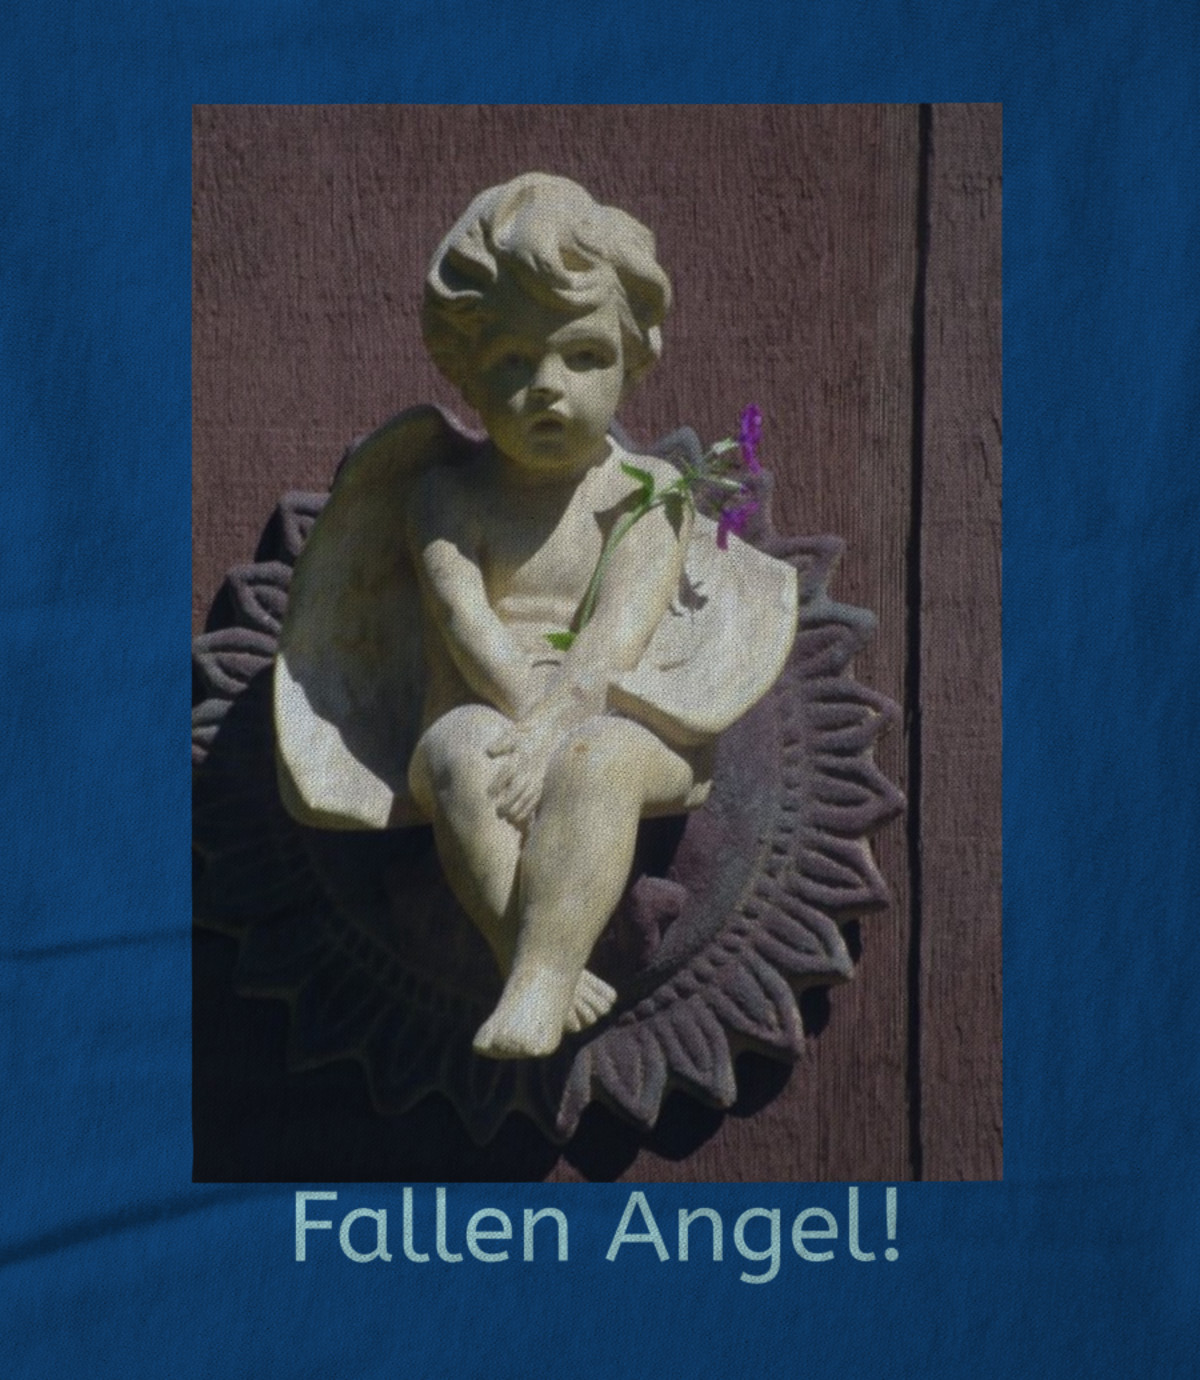 Matthew f  blowers iii  c  2017 fallen angel  1506451146